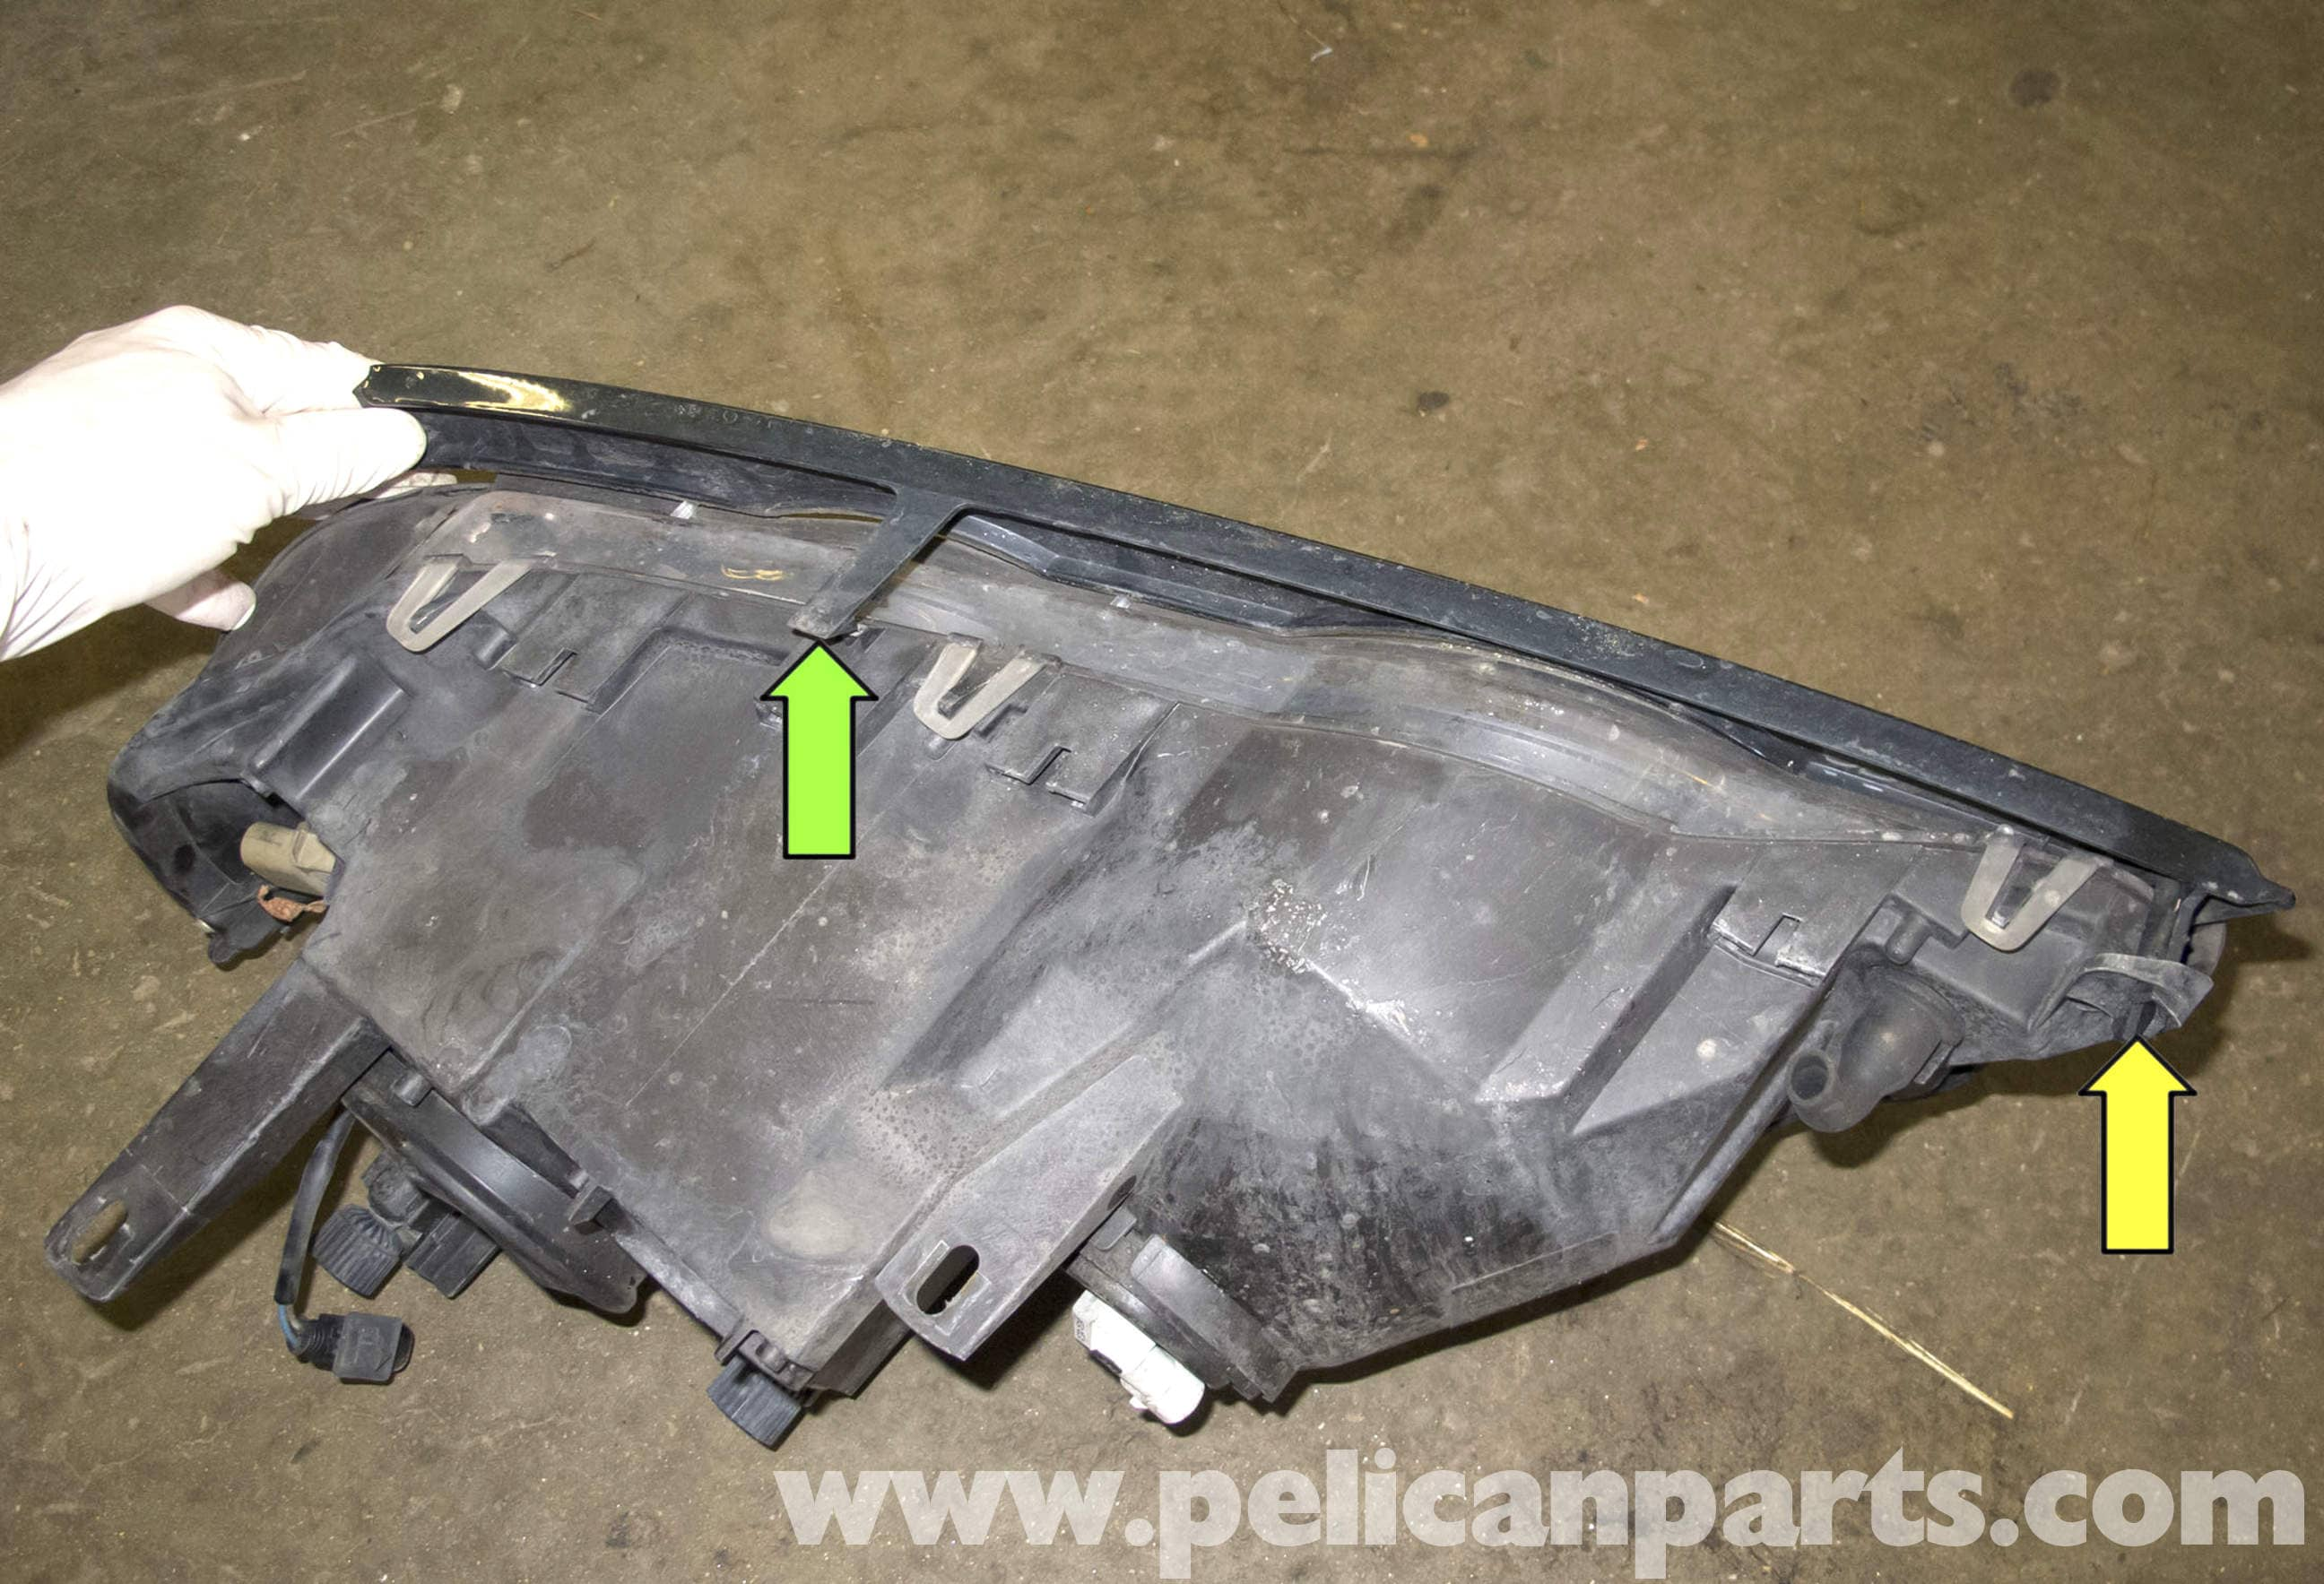 BMW Aftermarket Parts >> BMW X5 Headlight Replacement (E53 2000 - 2006) | Pelican ...